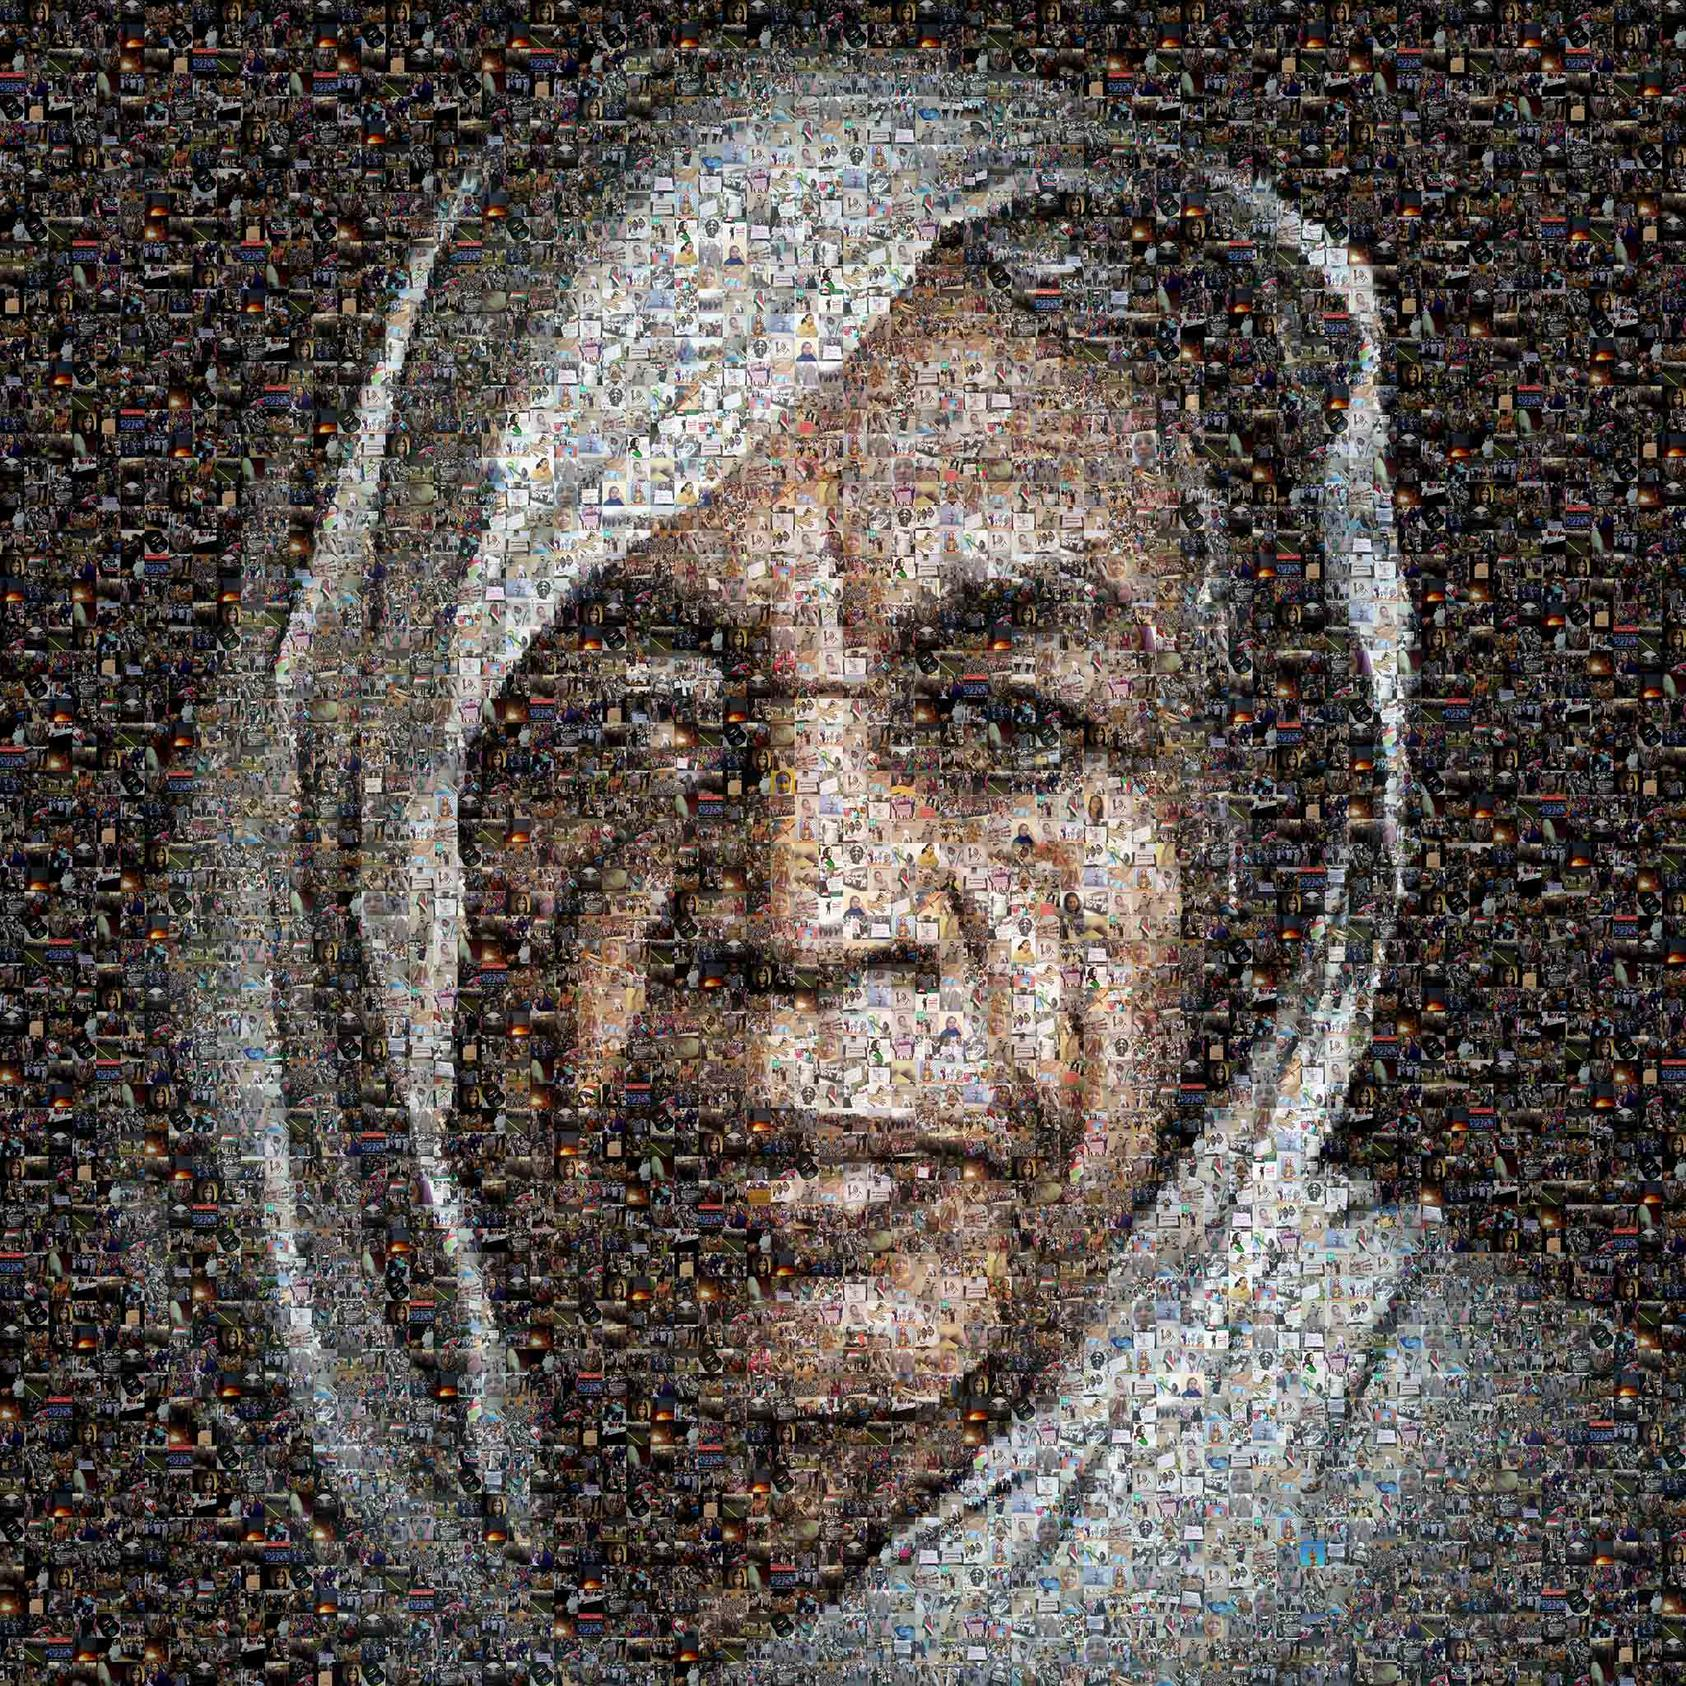 Merghani Salih's mosaic of the 'The Kandaka' highlighted women's contribution to the revolution. Originally shared on social media, it was later shared in news media, at venues internationally, and at the military headquarters sit-in in May 2019.